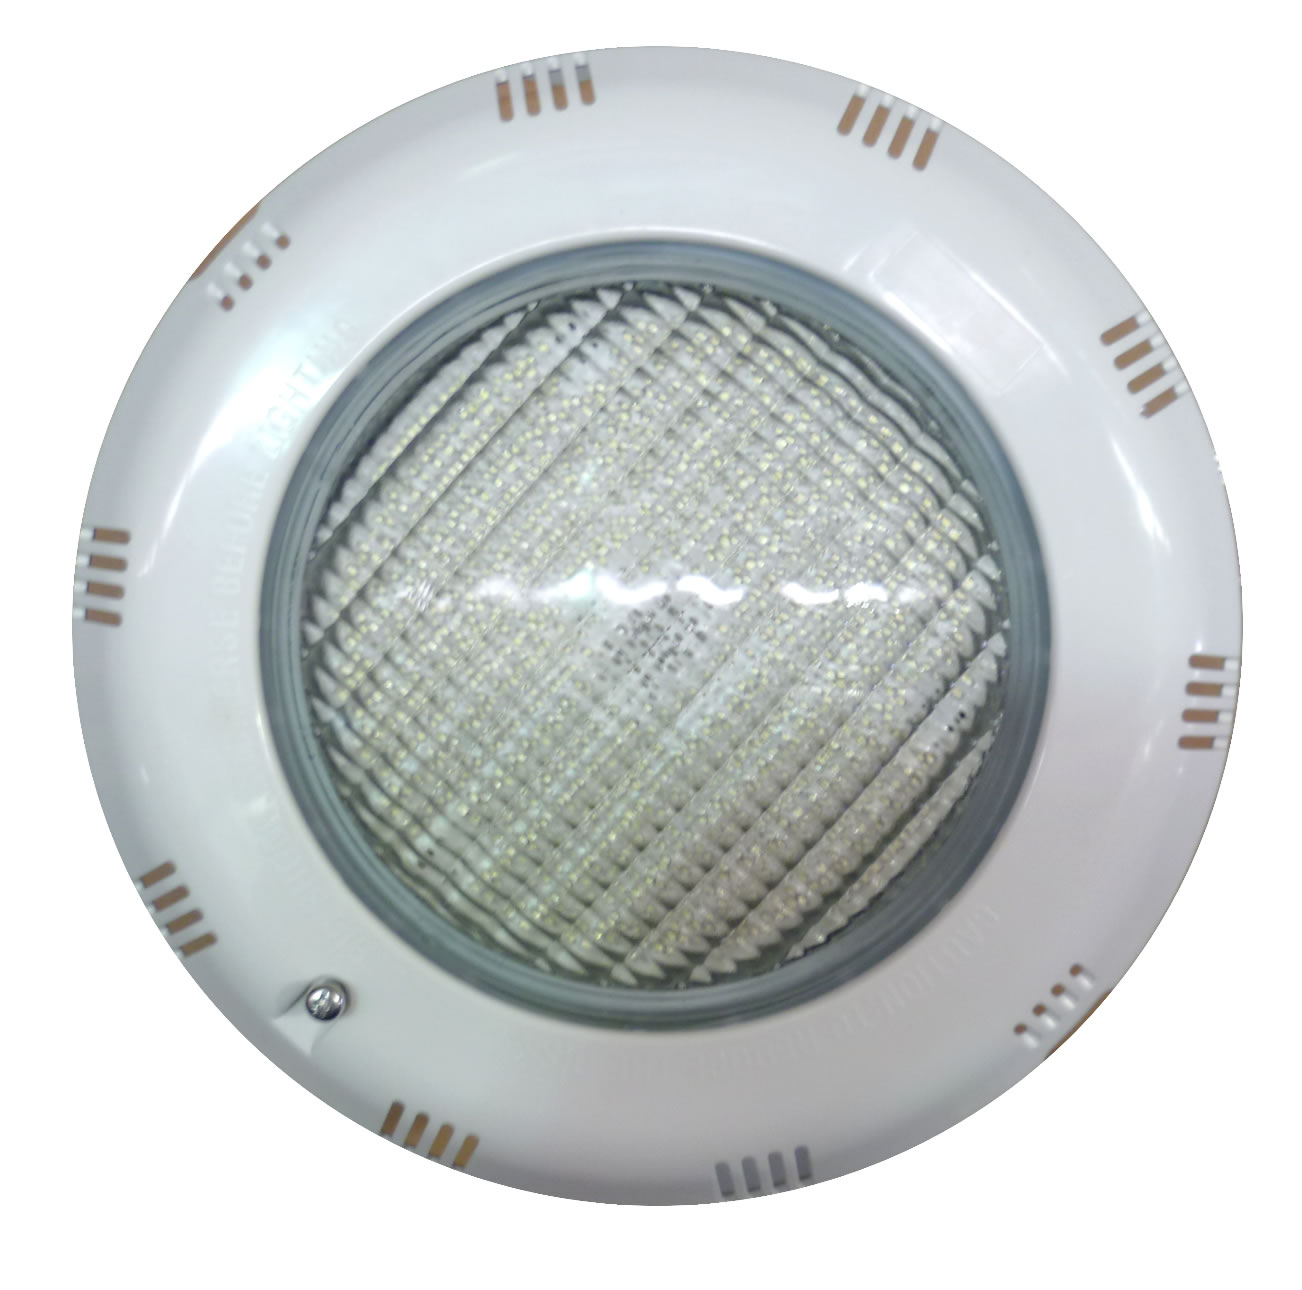 Foco 252 led 300 16 w 12 v 26 652 cm diametro - Iluminacion piscinas led ...